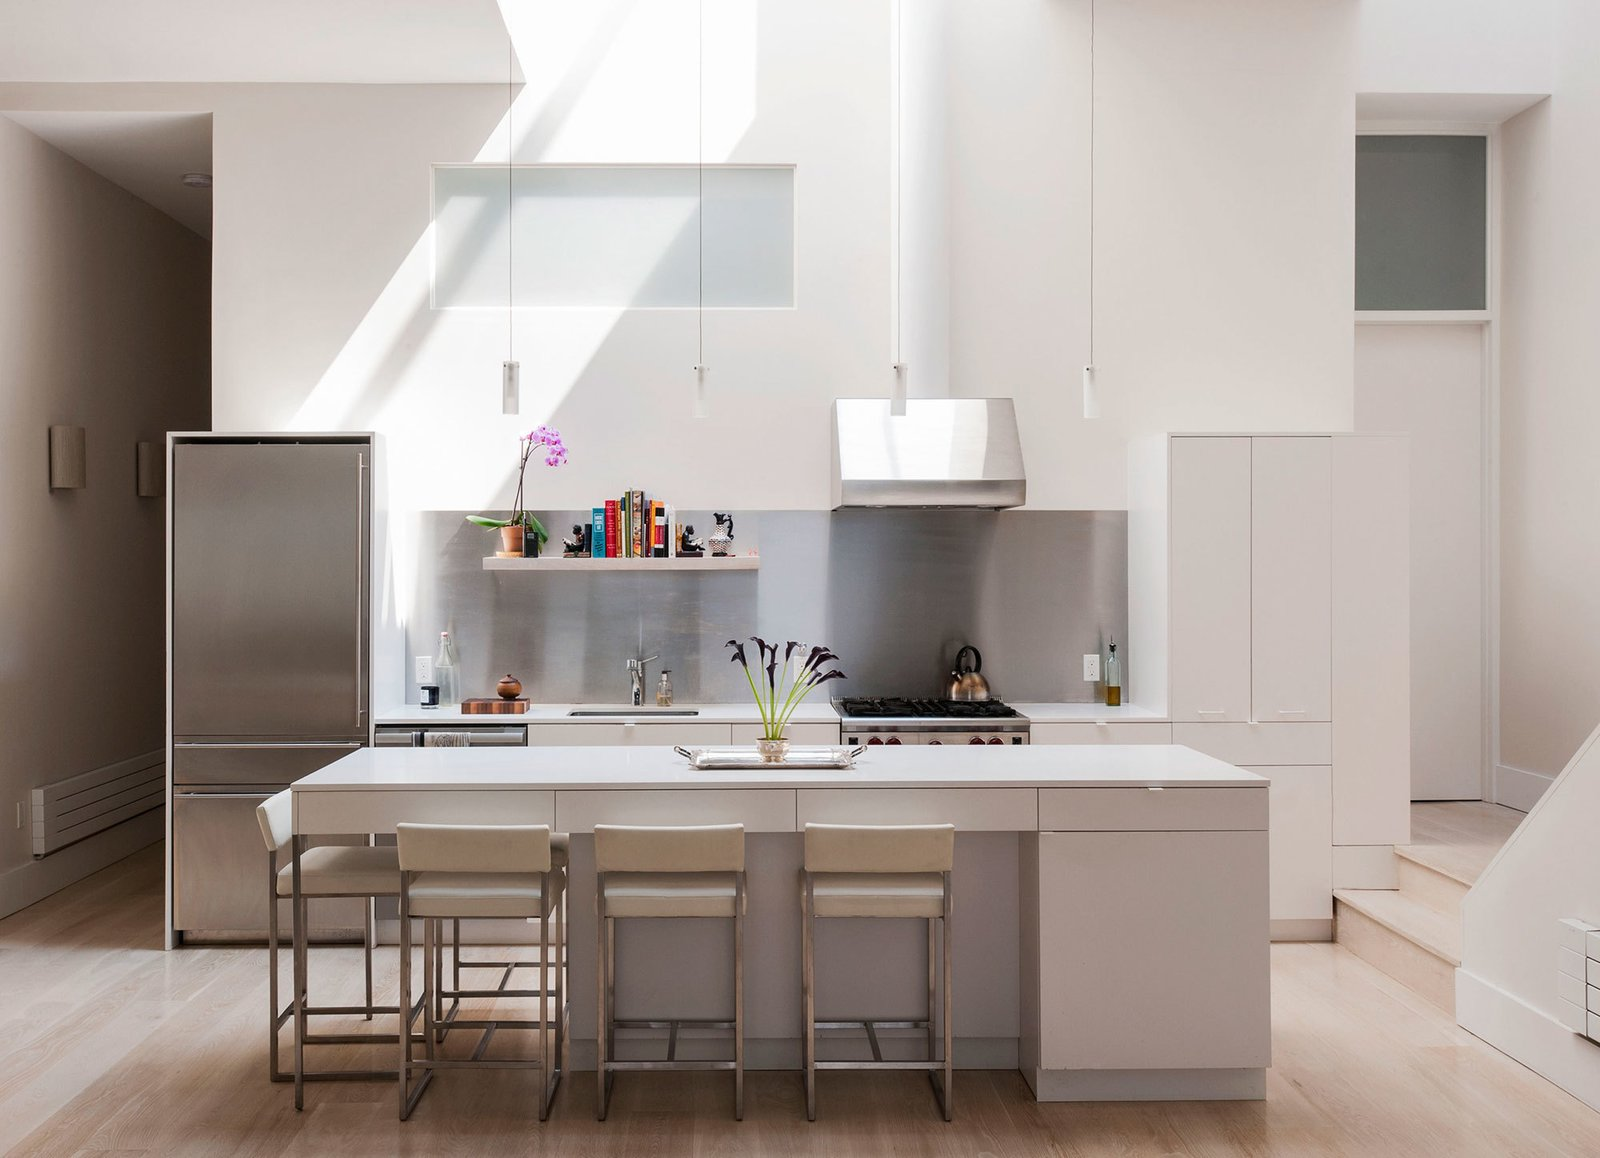 Photo 2 of 9 in A 19th Century Firehouse Becomes a Three-Story Modern Home